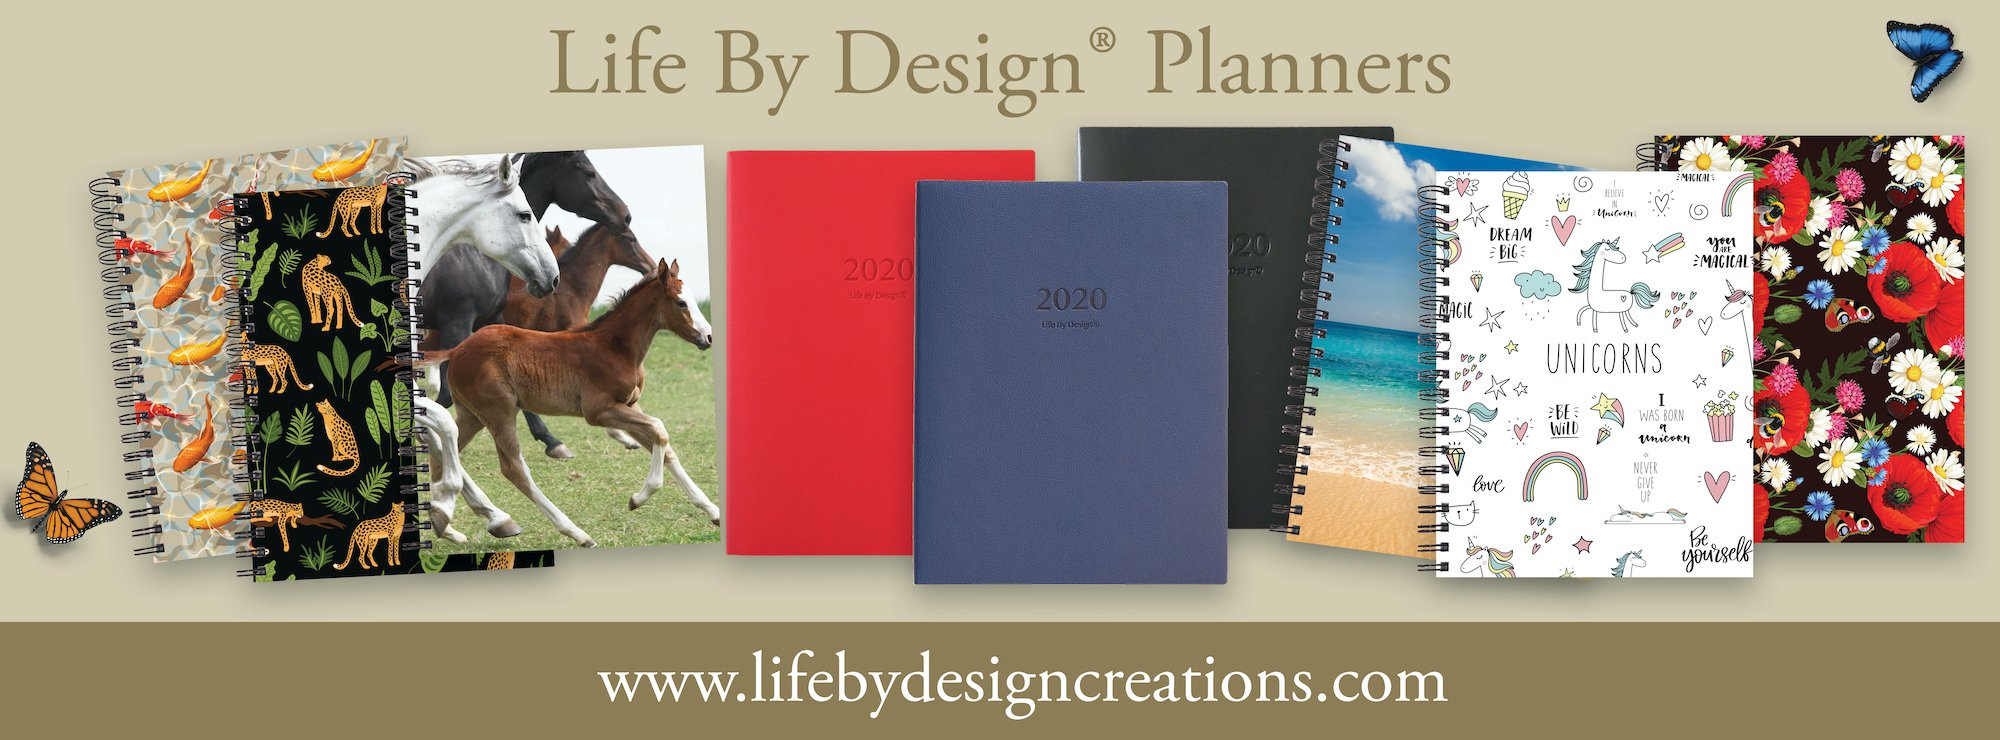 Life By Design Planners